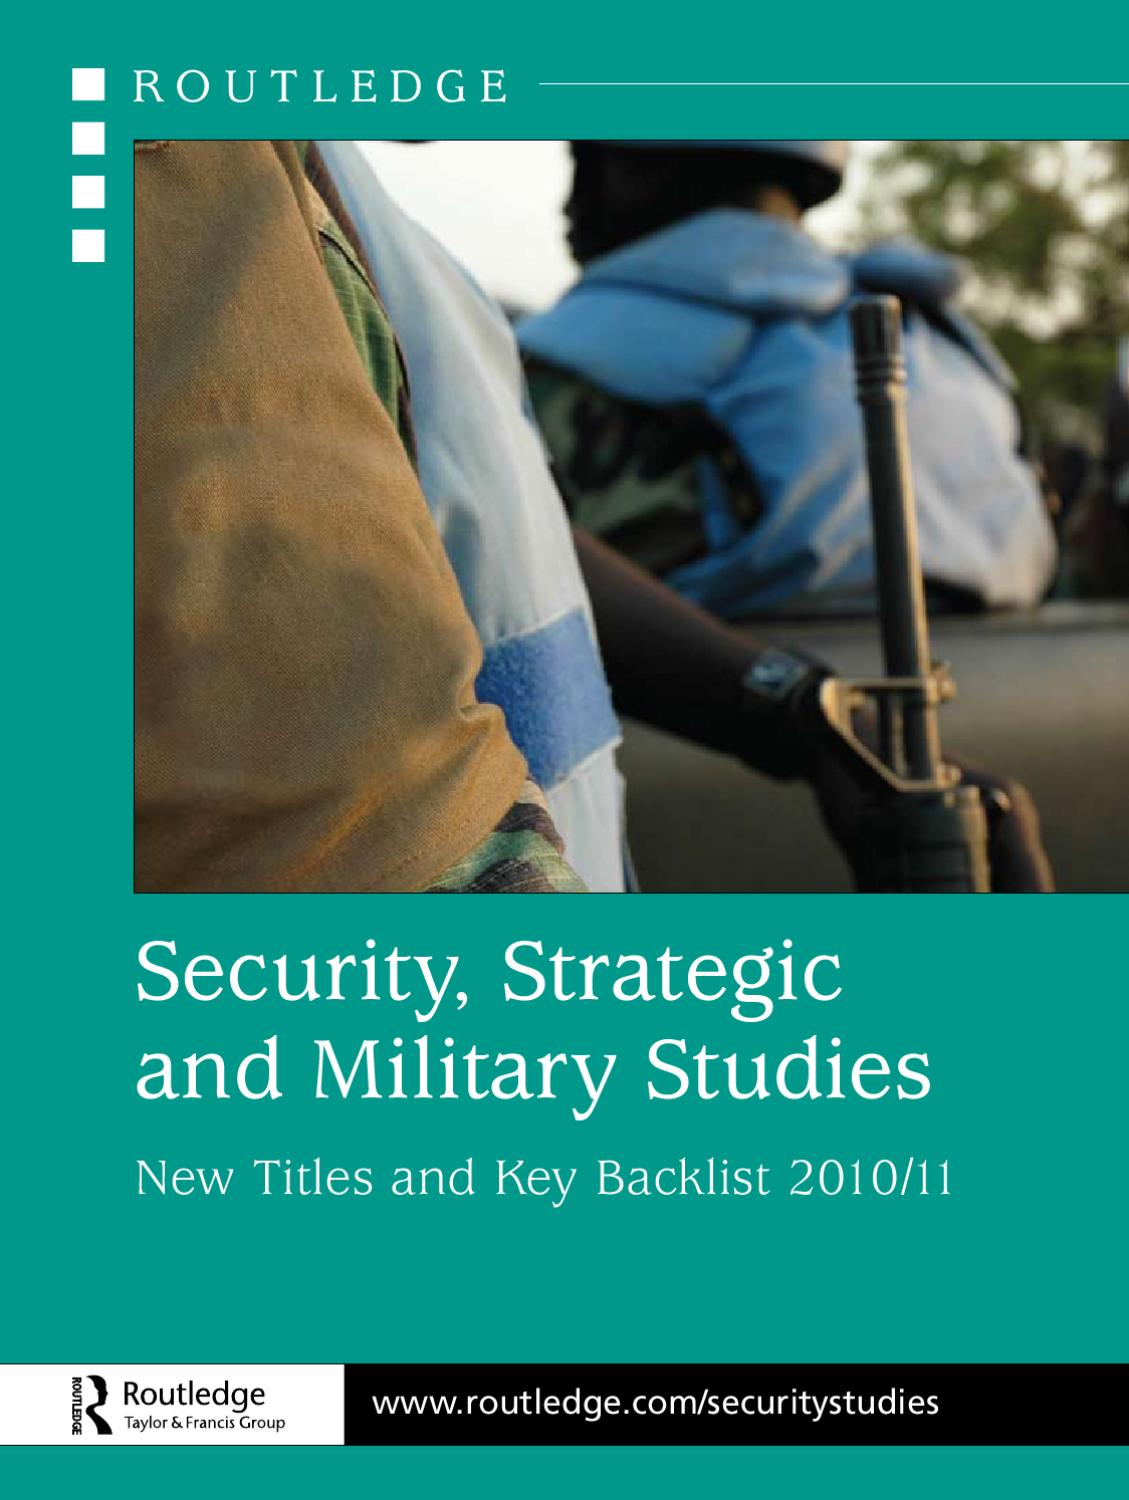 2011 (uk) By Routledge Taylor  & Francis Group  Issuu